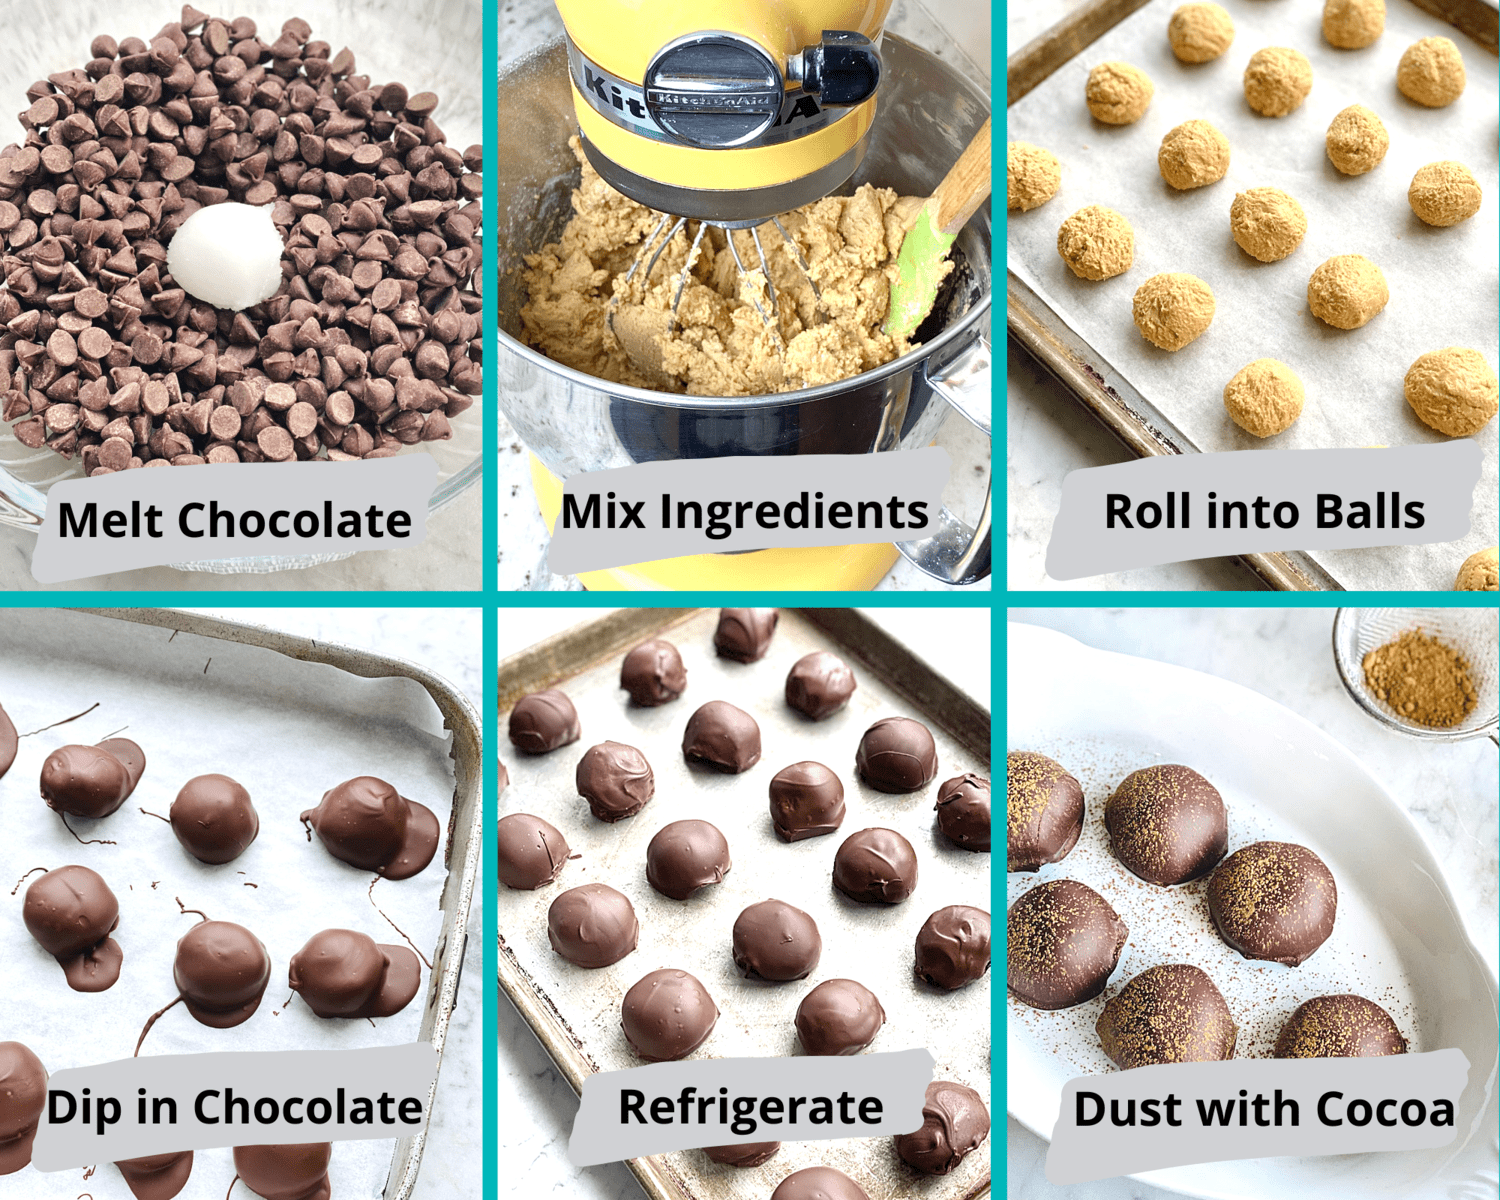 step by step instructions on how to make chocolate peanut butter balls.